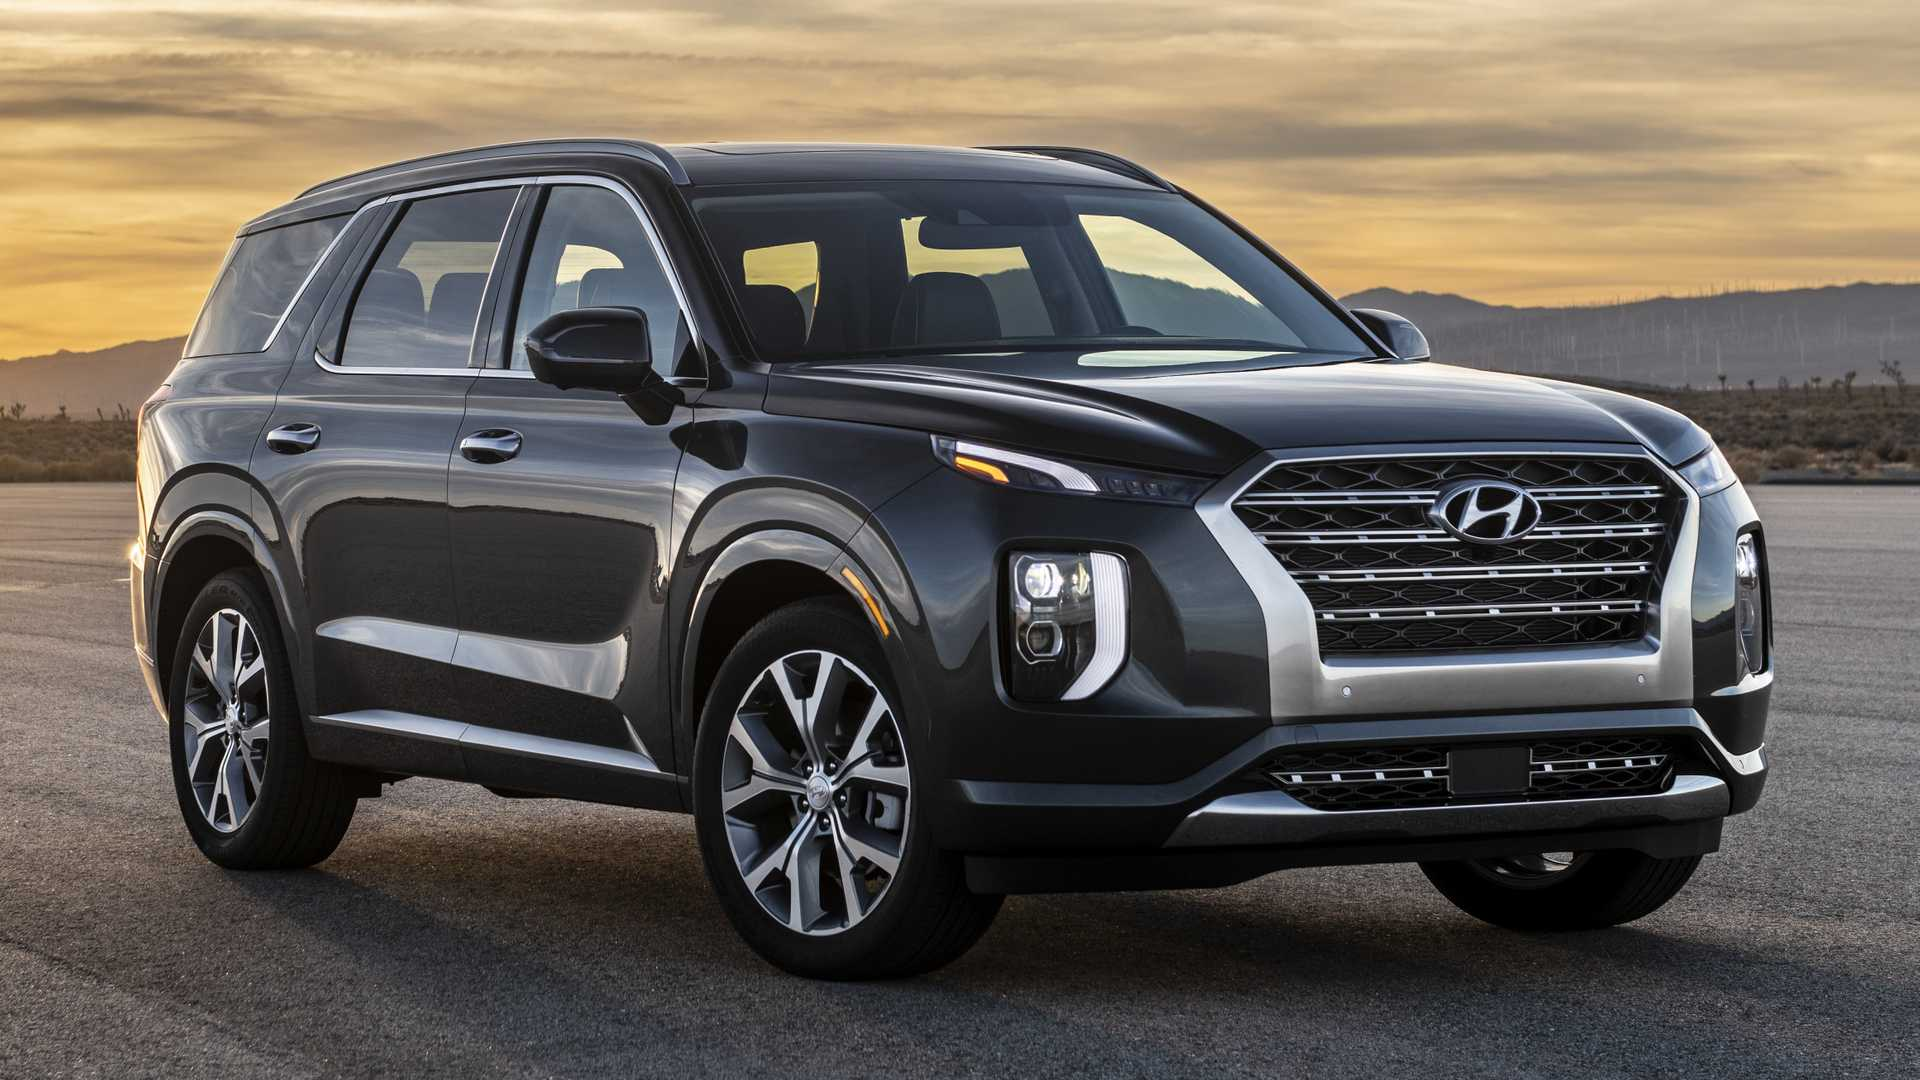 82 Great 2020 Hyundai Palisade Trim Levels Release Date for 2020 Hyundai Palisade Trim Levels